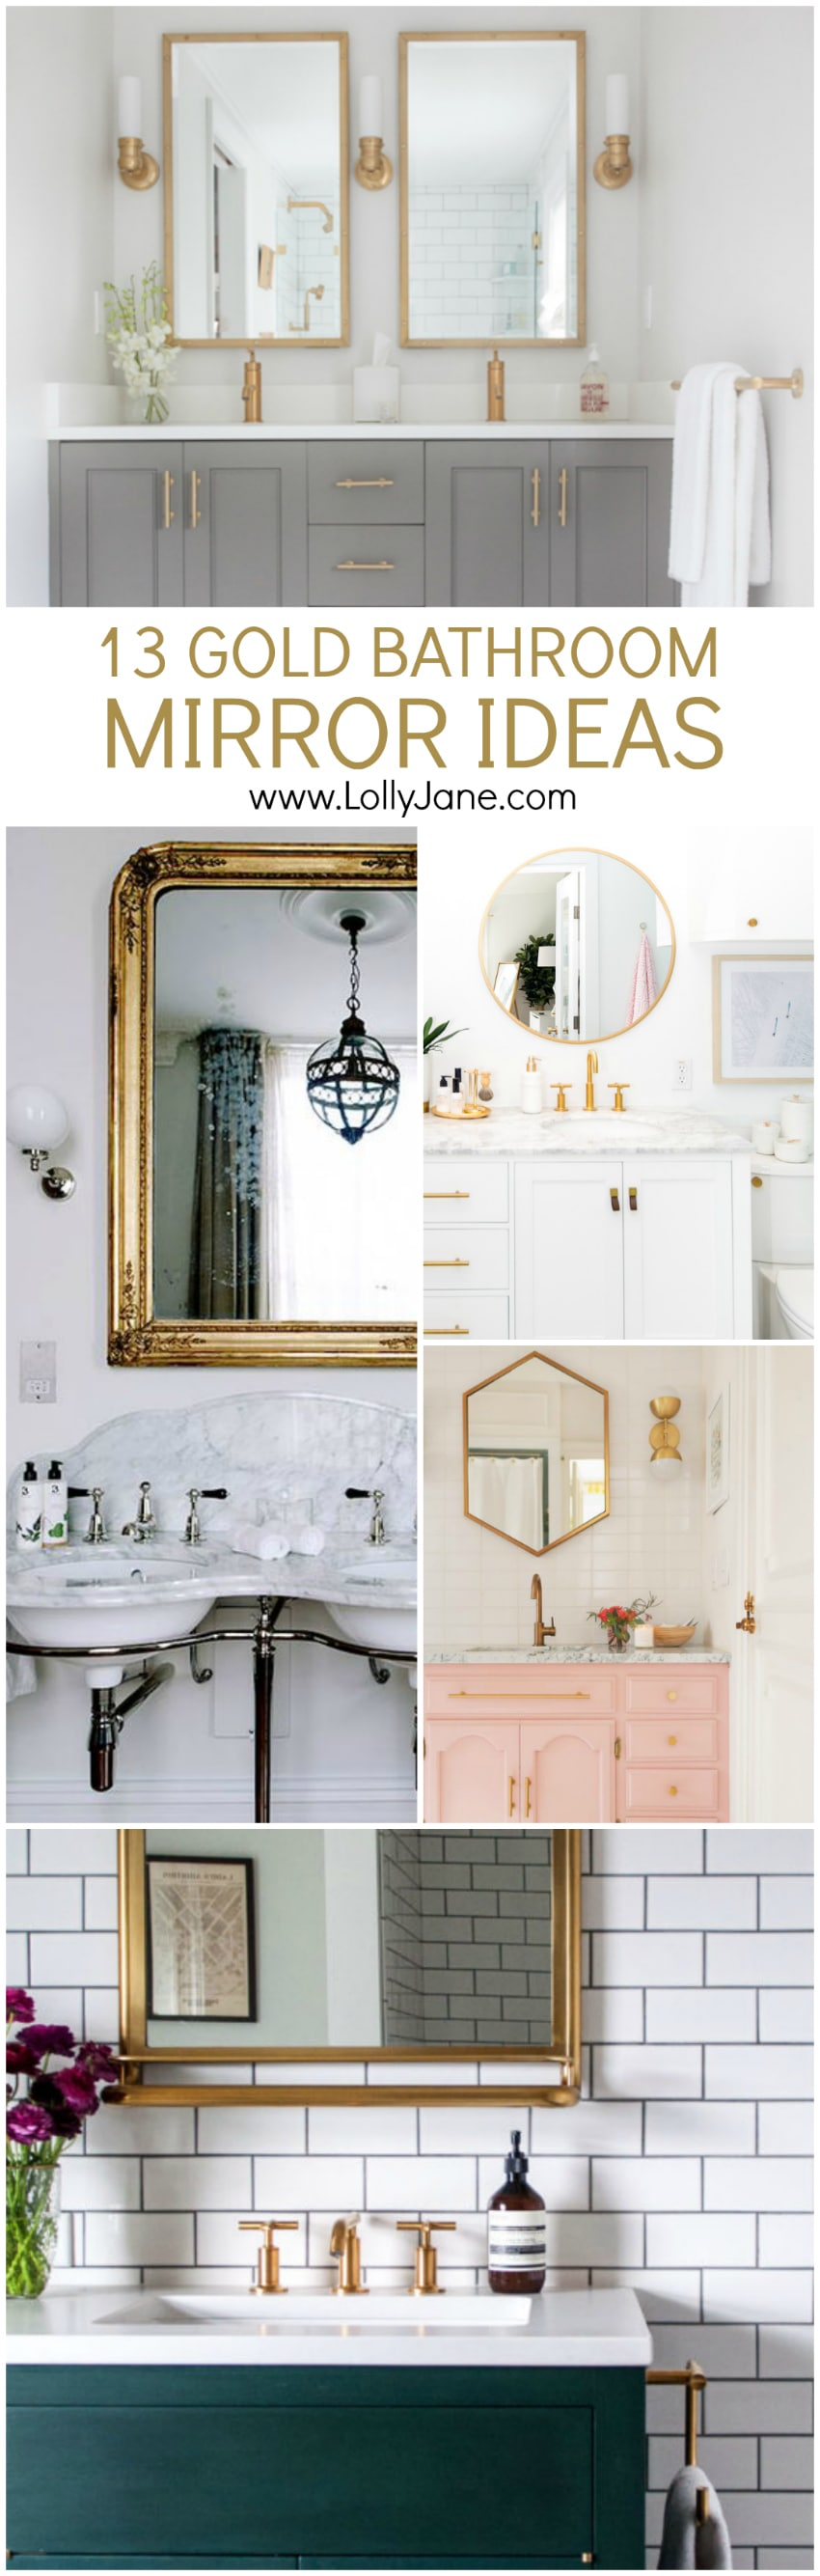 13 gold bathroom mirror ideas